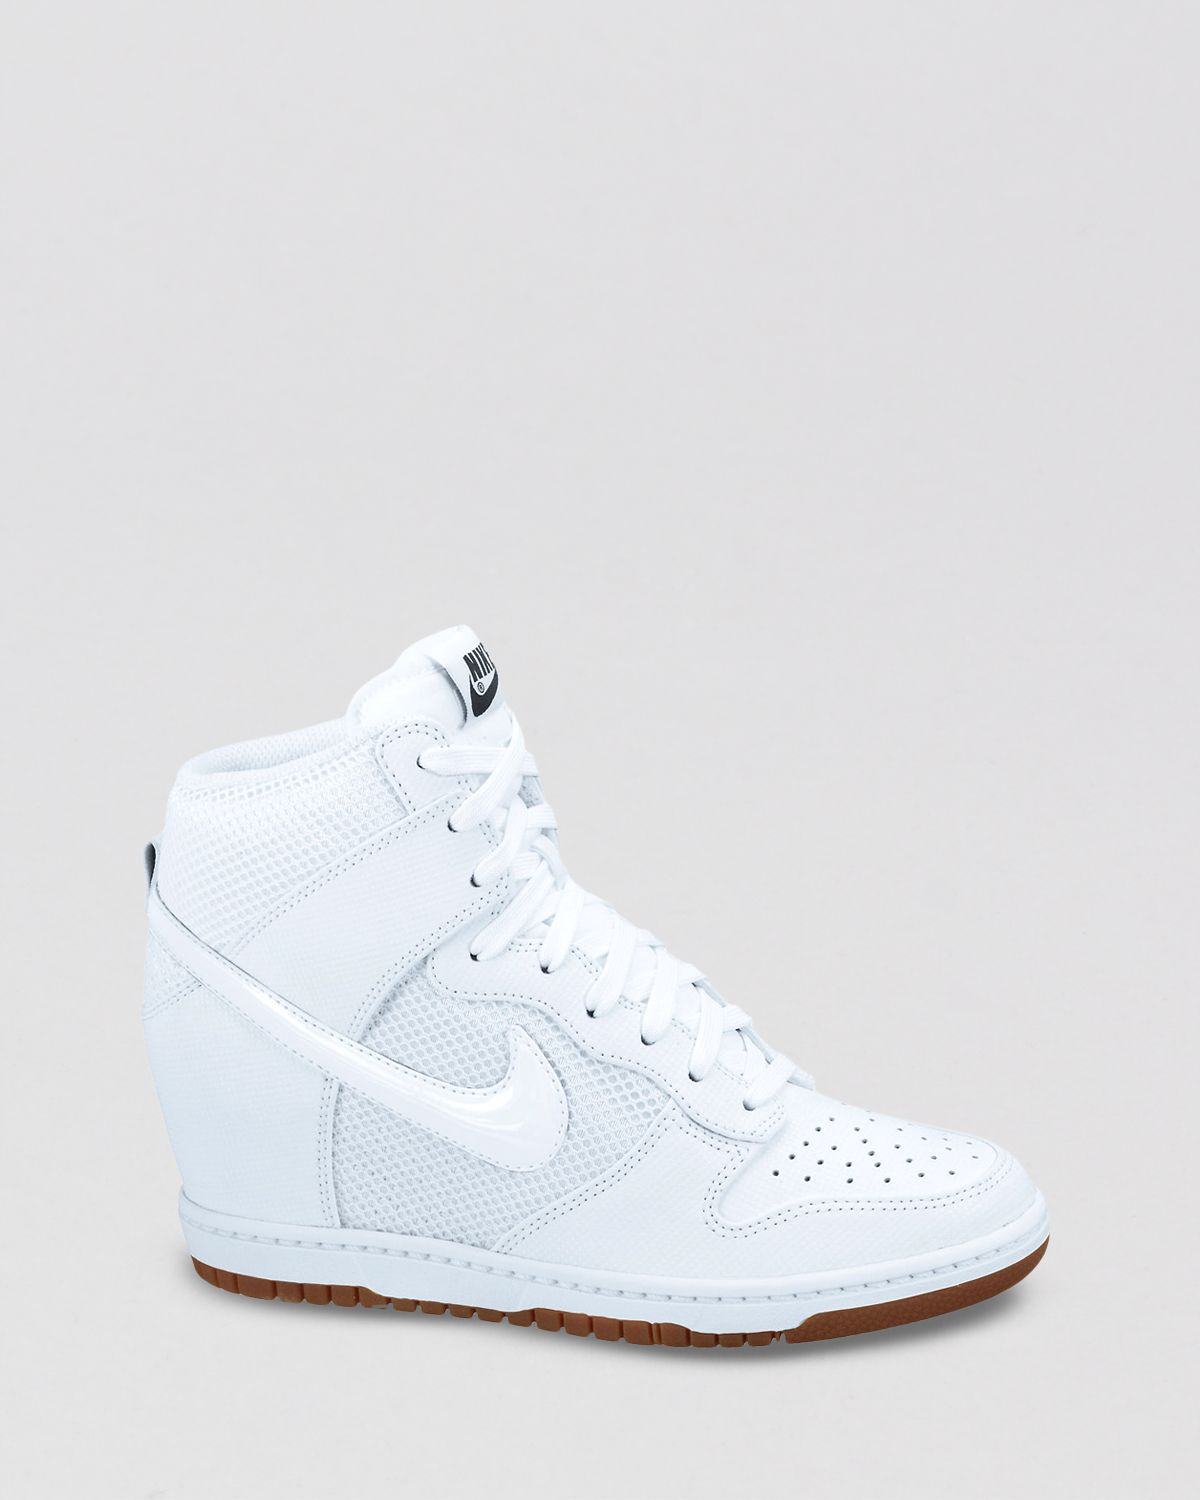 Lyst - Nike Lace Up High Top Sneaker Wedges Womens Dunk -5838